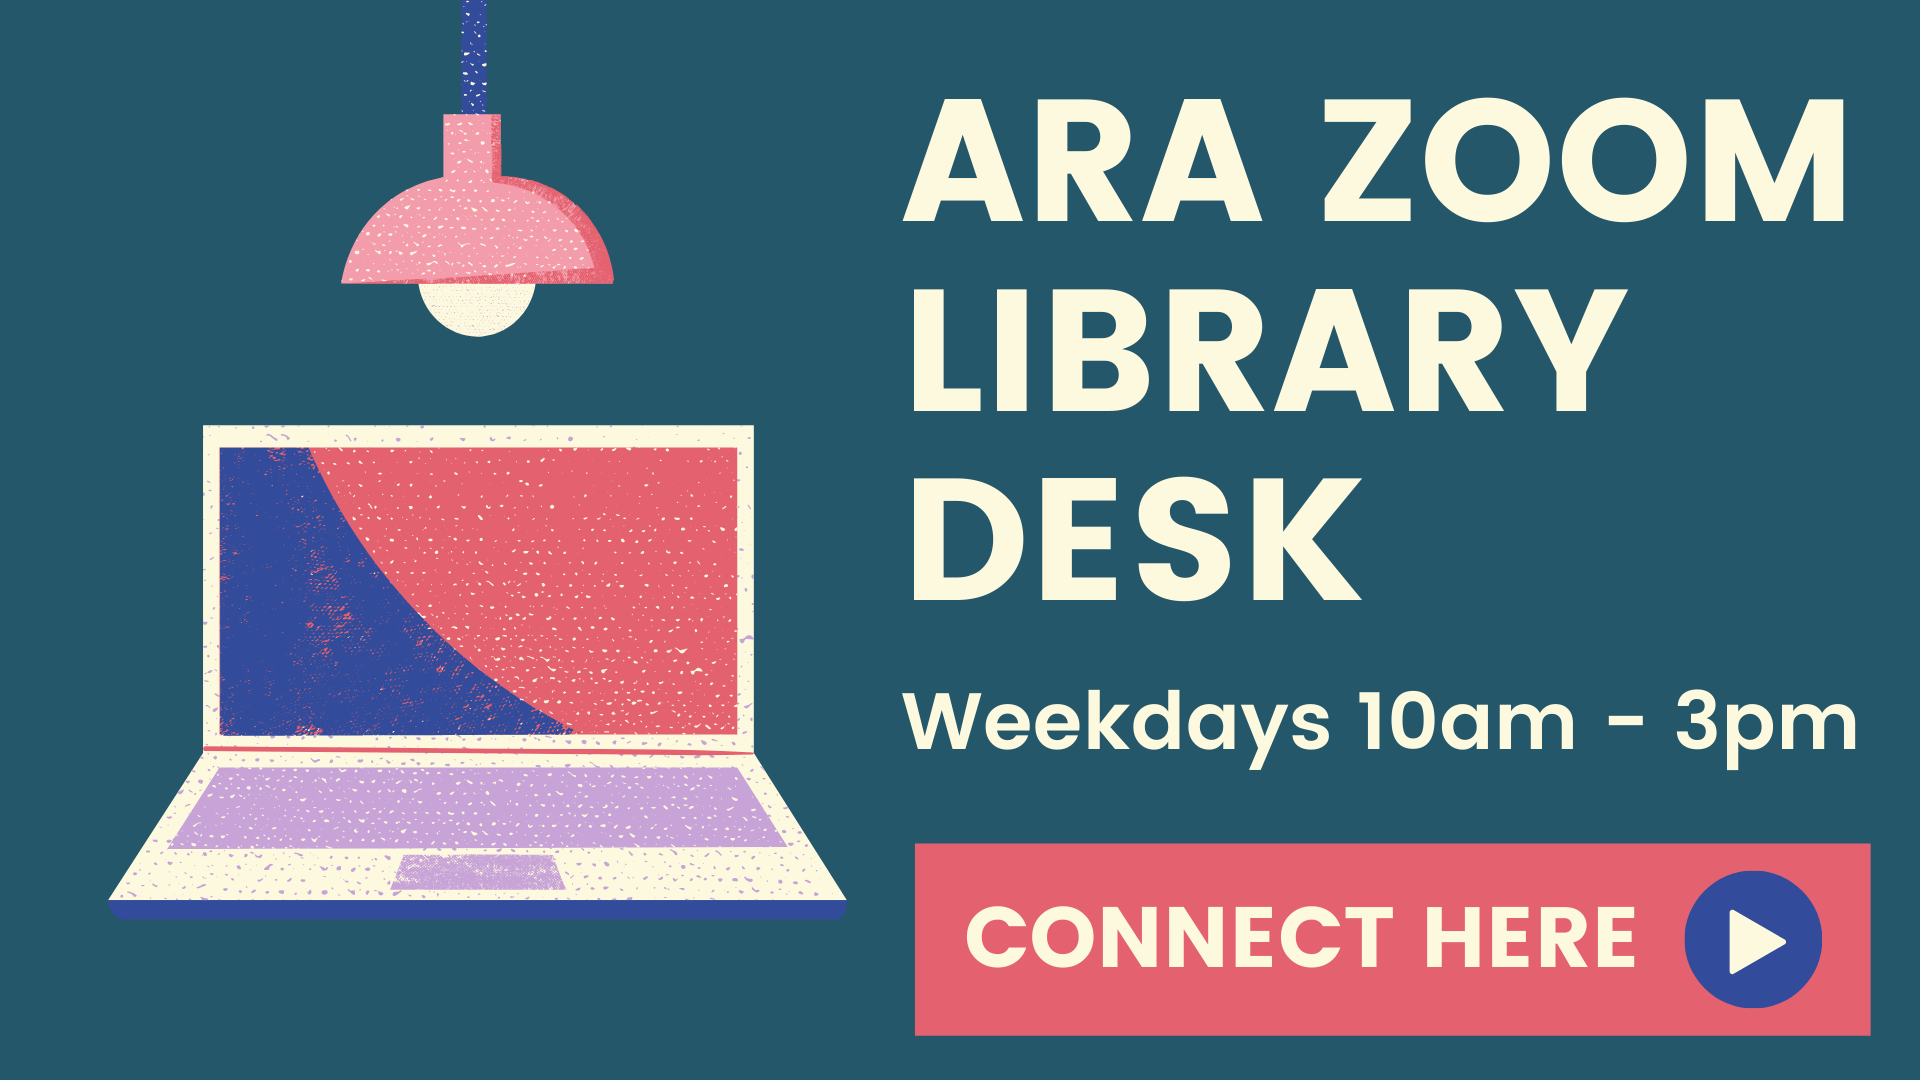 Library Help @ the Ara Zoom Library Desk